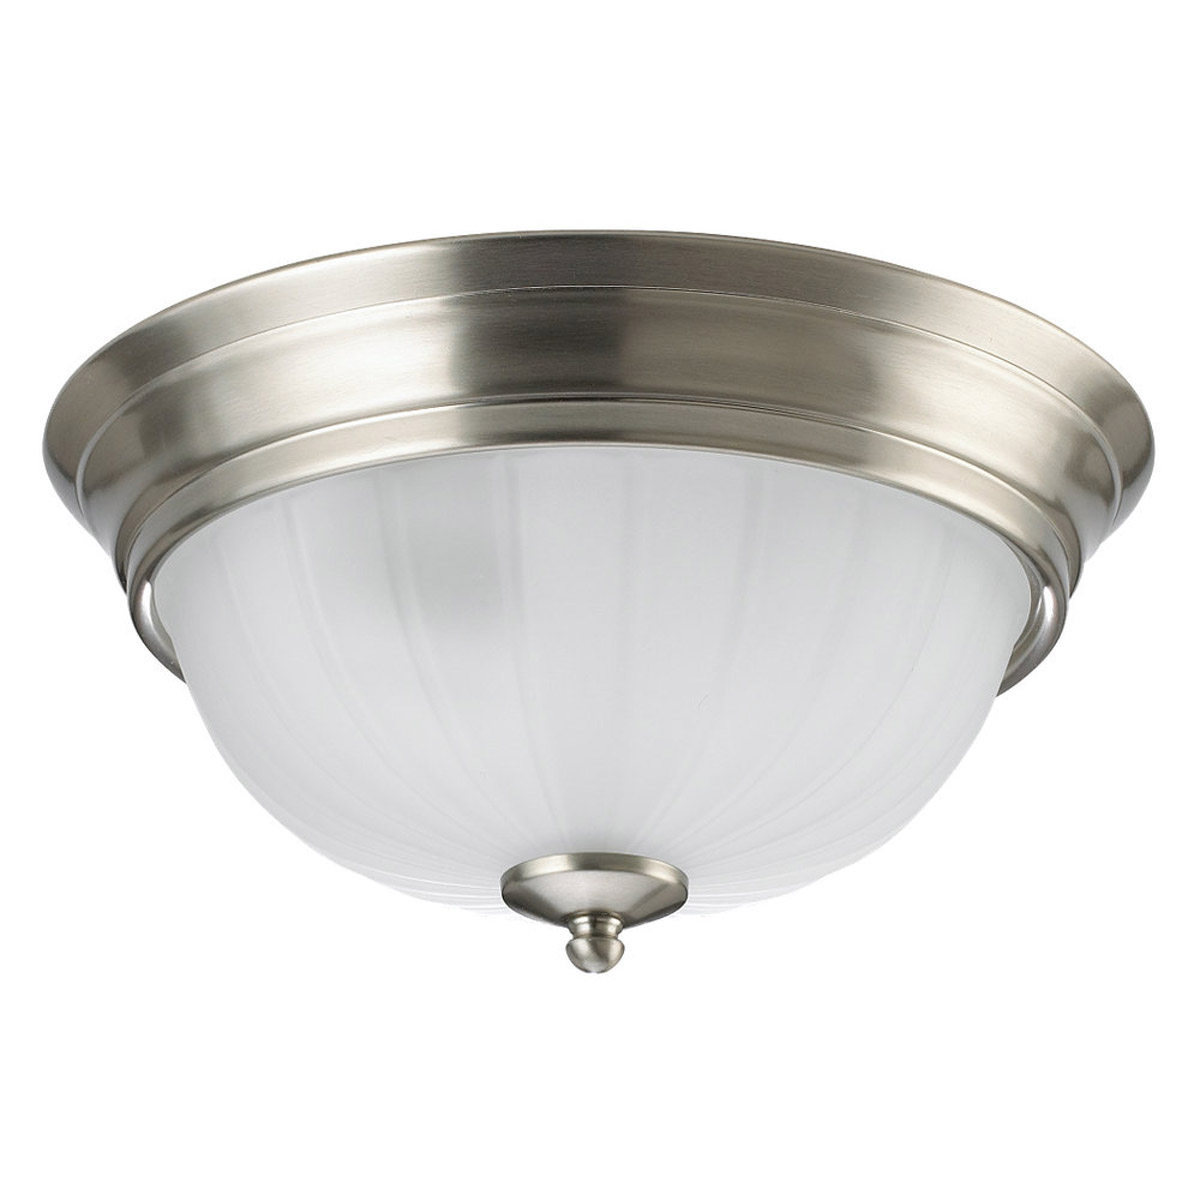 Sea Gull Lighting Linwood 1 Light Flush Mount in Brushed Nickel 7504-962